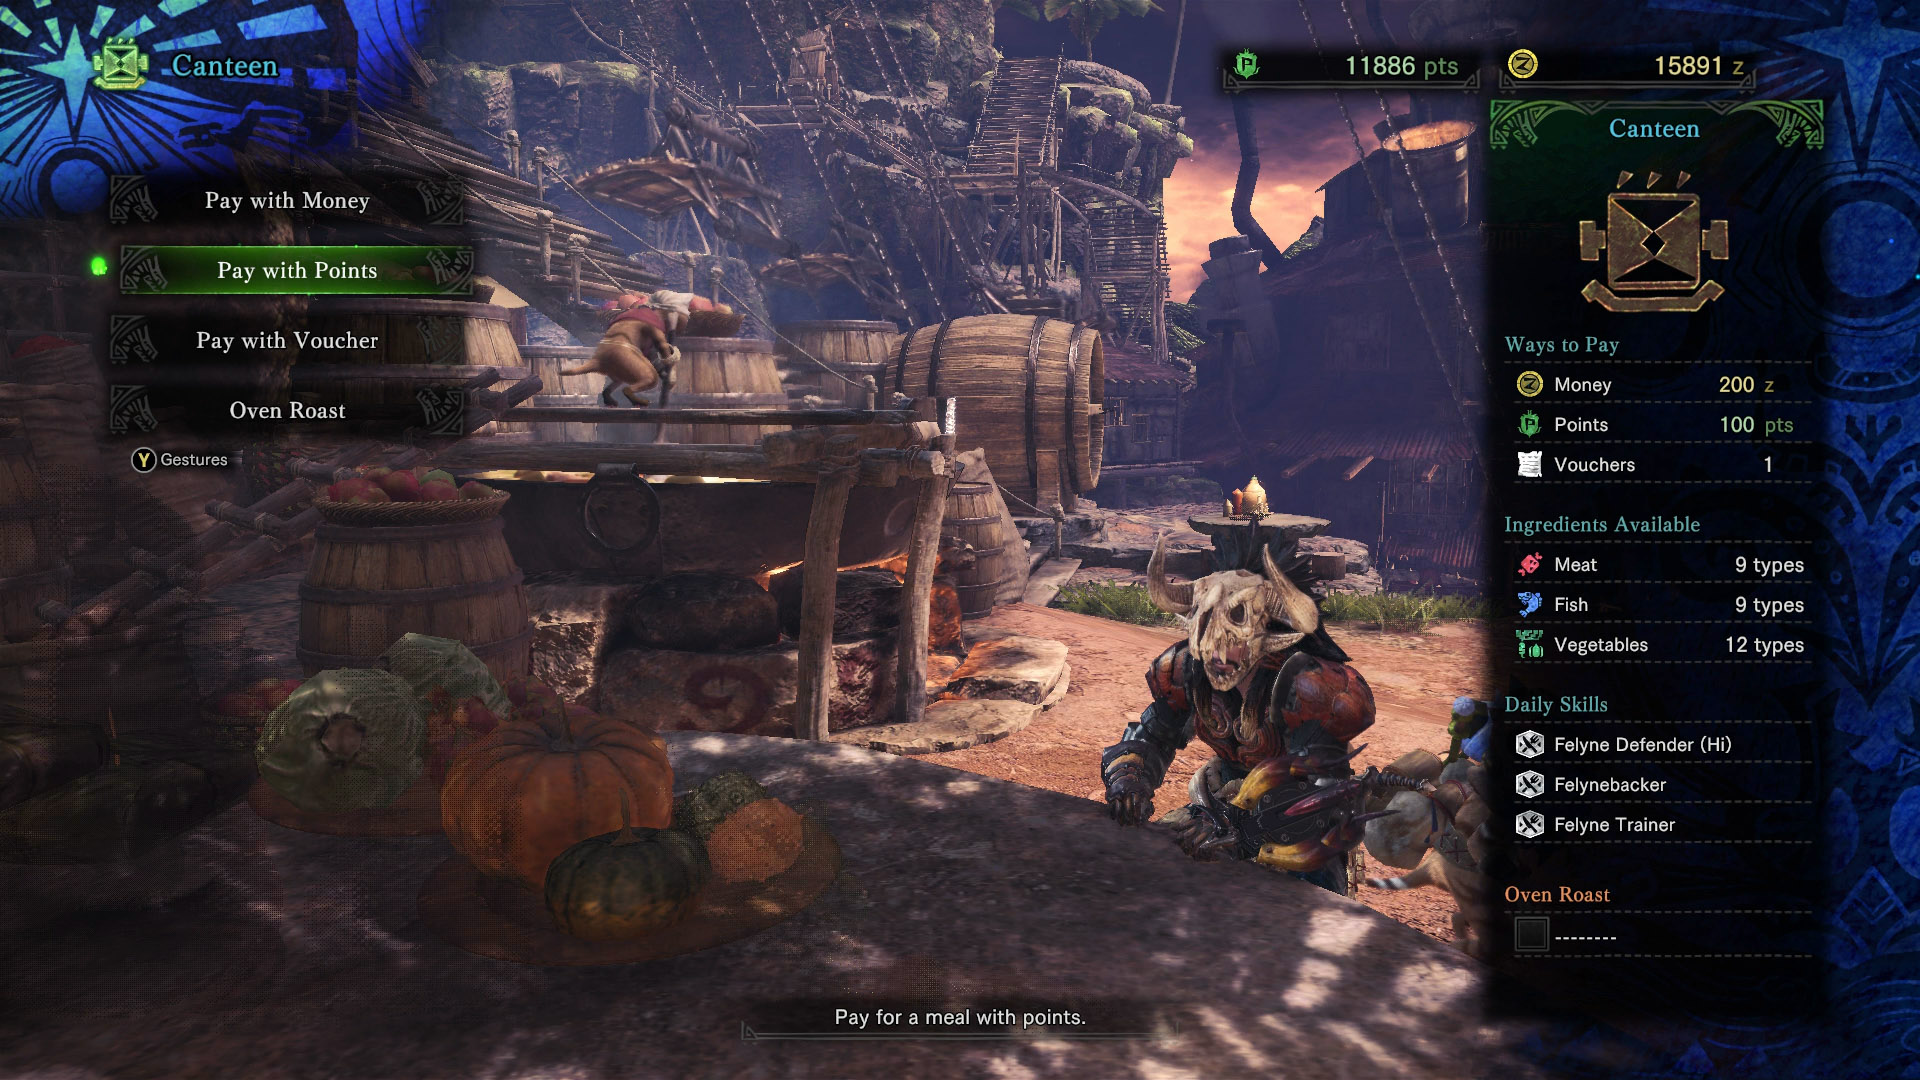 Monster Hunter World Update 1.02 Stomps Out, Here's the Patch Notes